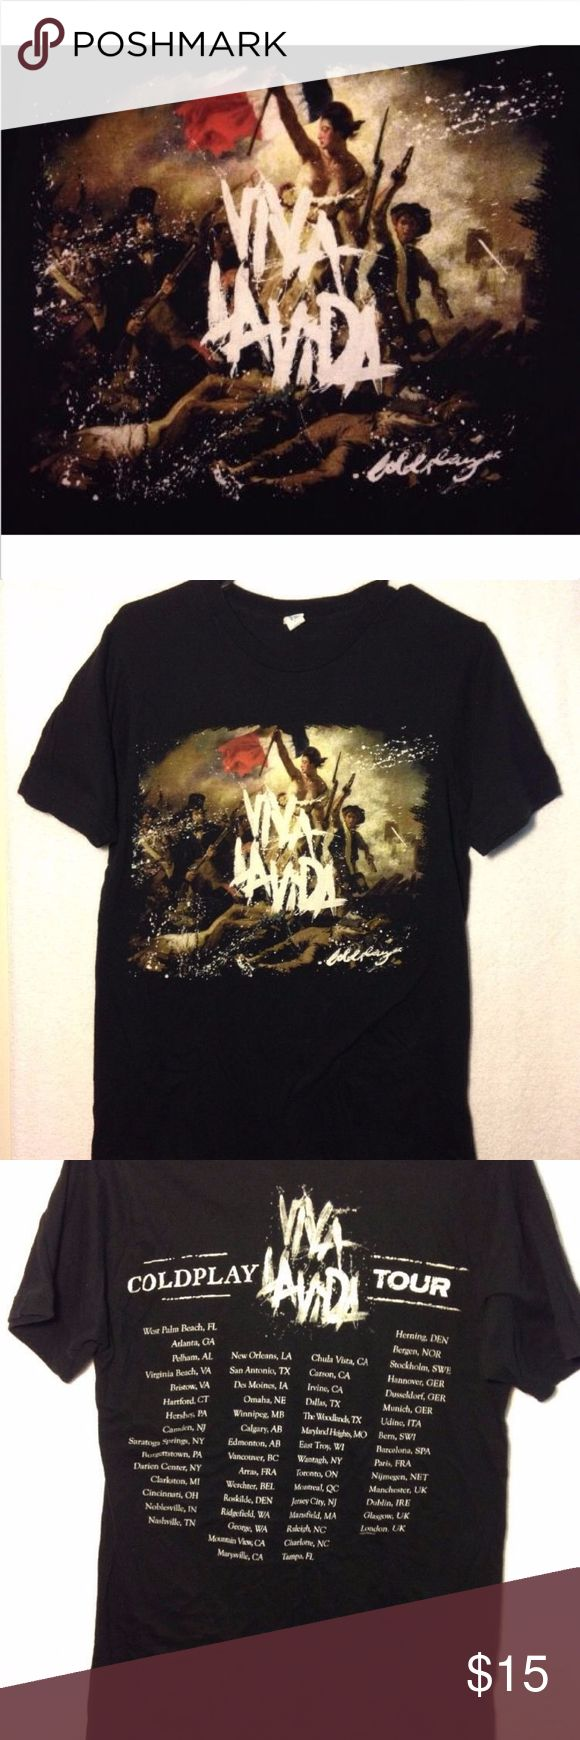 COLDPLAY Viva La Vida Tour '08 Black T-Shirt Small Excellent condition authentic Coldplay tour shirt made by Tultex. 100% pre shrunk cotton. Mens size small. A woman or child could also wear this. Please check the measurments below to see if it will fit you.  MEASUREMENTS:  armpit to armpit: 17.5  inches length: 28  inches Tultex Shirts Tees - Short Sleeve